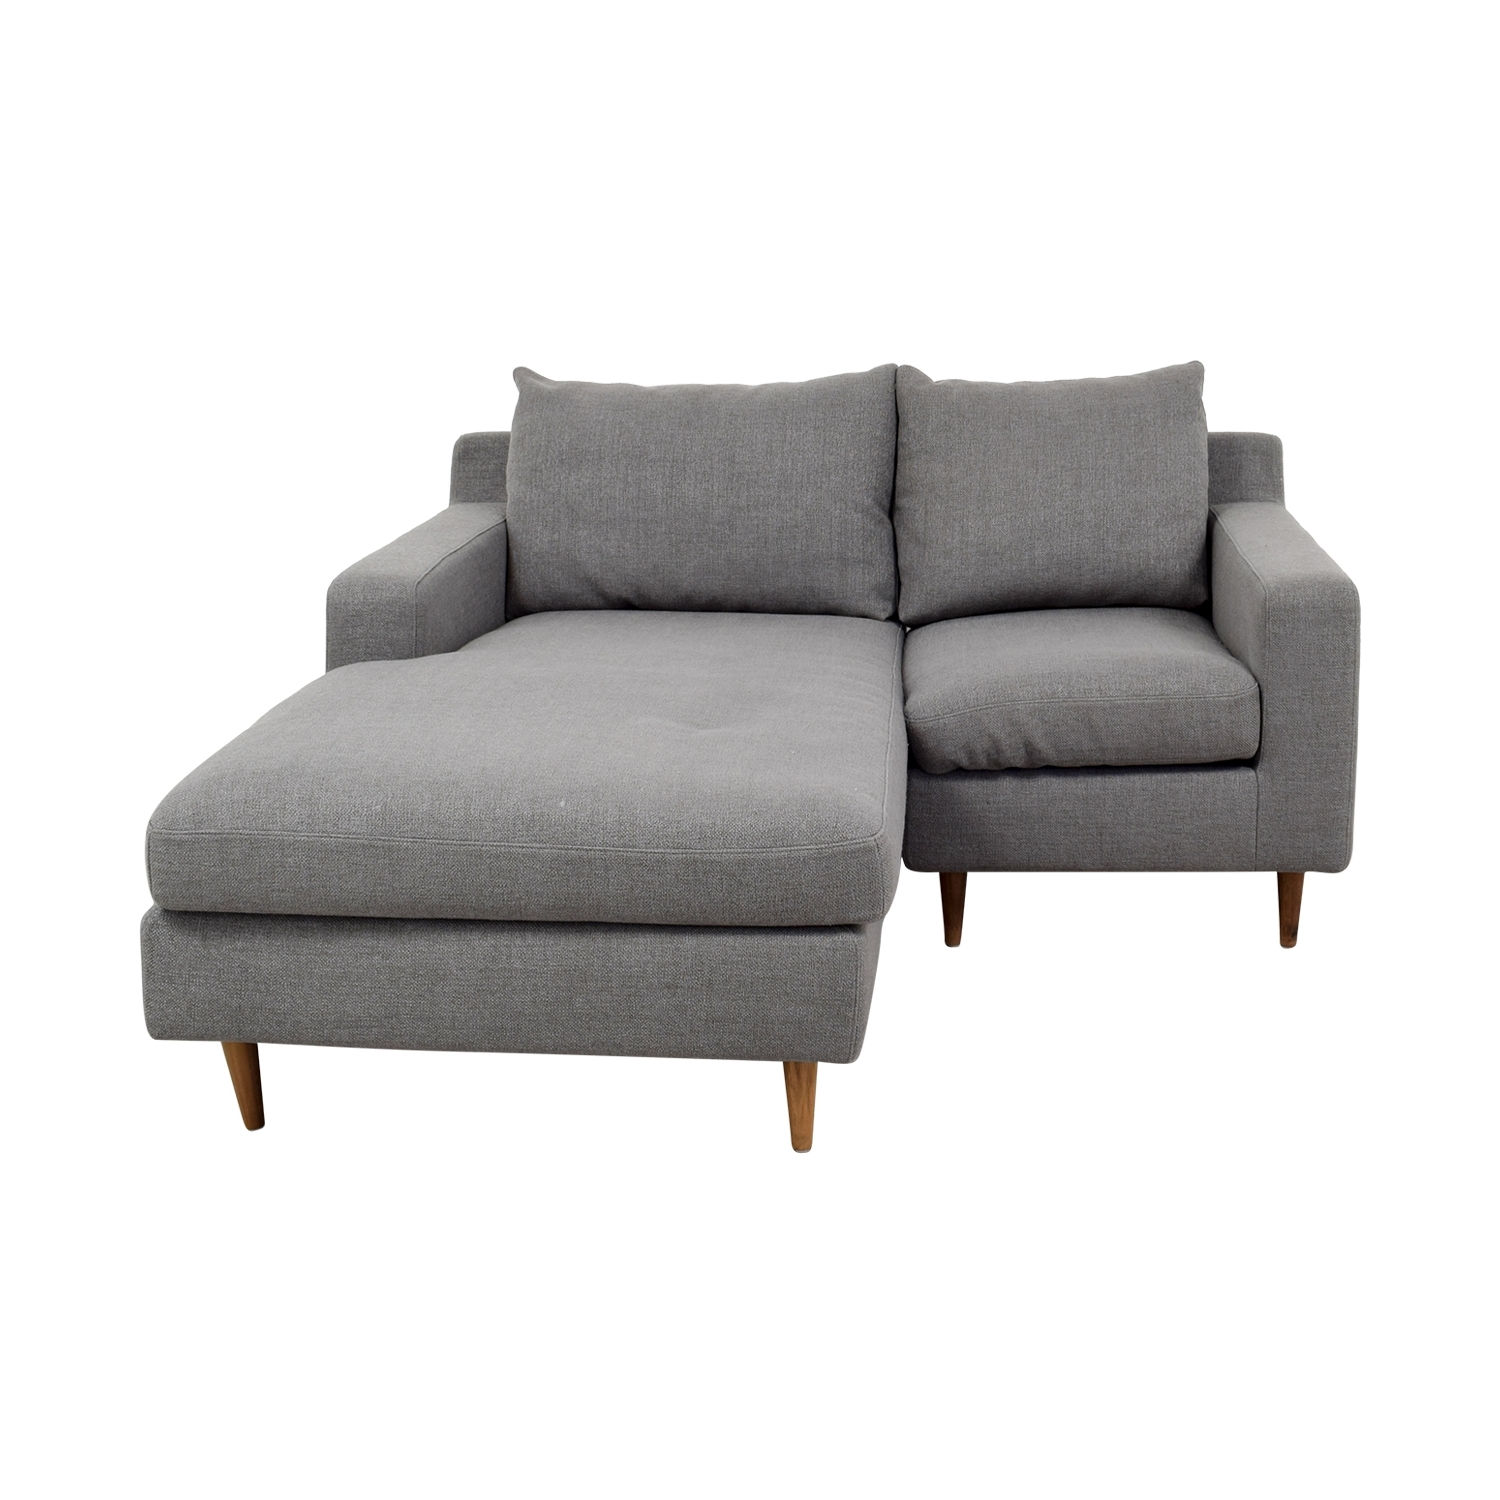 [%80% Off – Interior Define Interior Define Custom Grey Loveseat Intended For 2017 Loveseats With Chaise Lounge|Loveseats With Chaise Lounge Within Well Liked 80% Off – Interior Define Interior Define Custom Grey Loveseat|Latest Loveseats With Chaise Lounge Regarding 80% Off – Interior Define Interior Define Custom Grey Loveseat|Best And Newest 80% Off – Interior Define Interior Define Custom Grey Loveseat Inside Loveseats With Chaise Lounge%] (View 1 of 15)